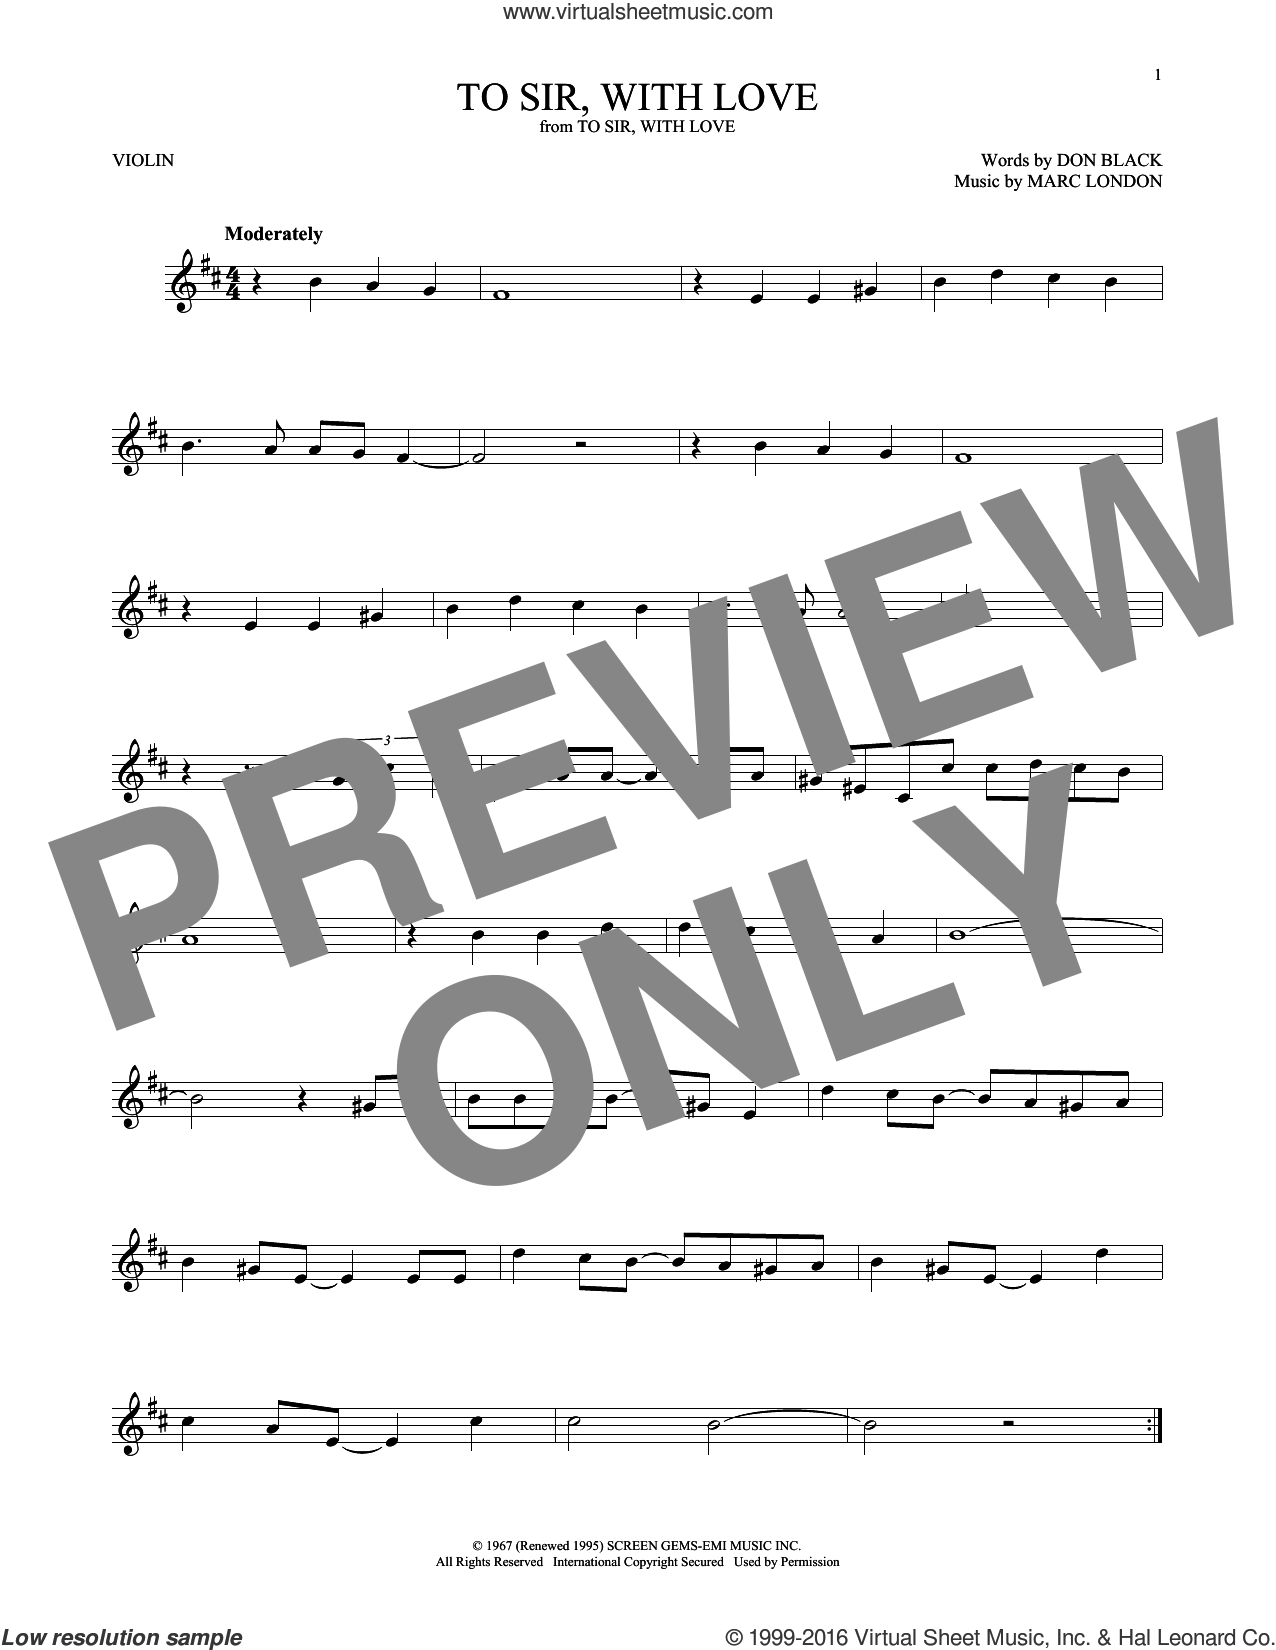 To Sir, With Love sheet music for violin solo by Marc London, Lulu and Don Black. Score Image Preview.